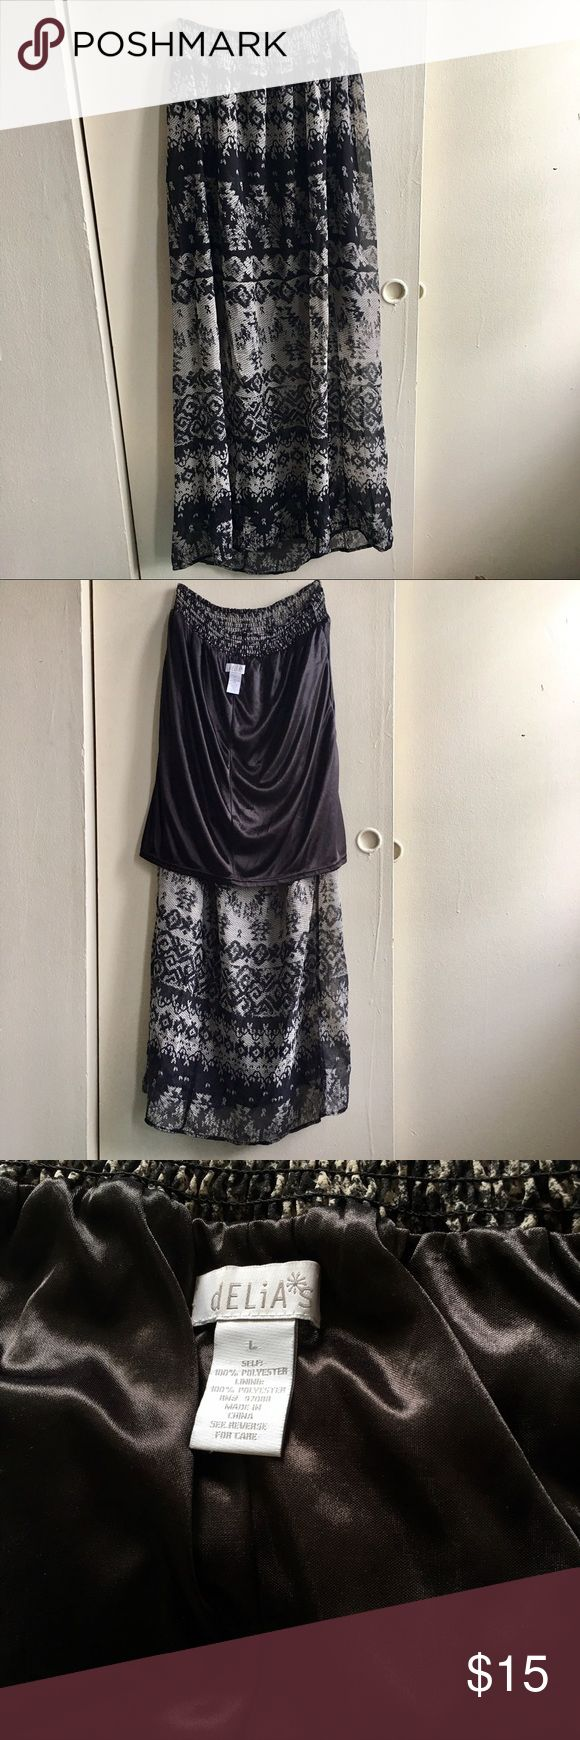 """Delia's Lovely Print Skirt 🌼 Women's Size L (According to Delia's size chart  Sizes 11-14 Hips: 39""""-41"""") Short black skirt underneath to protect see-through (see second photo)  Breezy, light, and perfect for warmer weather ☀️  I'm 5'2 and length is good and waistband is stretchy for comfy fit (:  Feel free to make offers . . #maxiskirt #longskirt #skirt #tribalprint #sweet #womenslarge #teen #summerfashion #springfashion Delia's Skirts Maxi"""